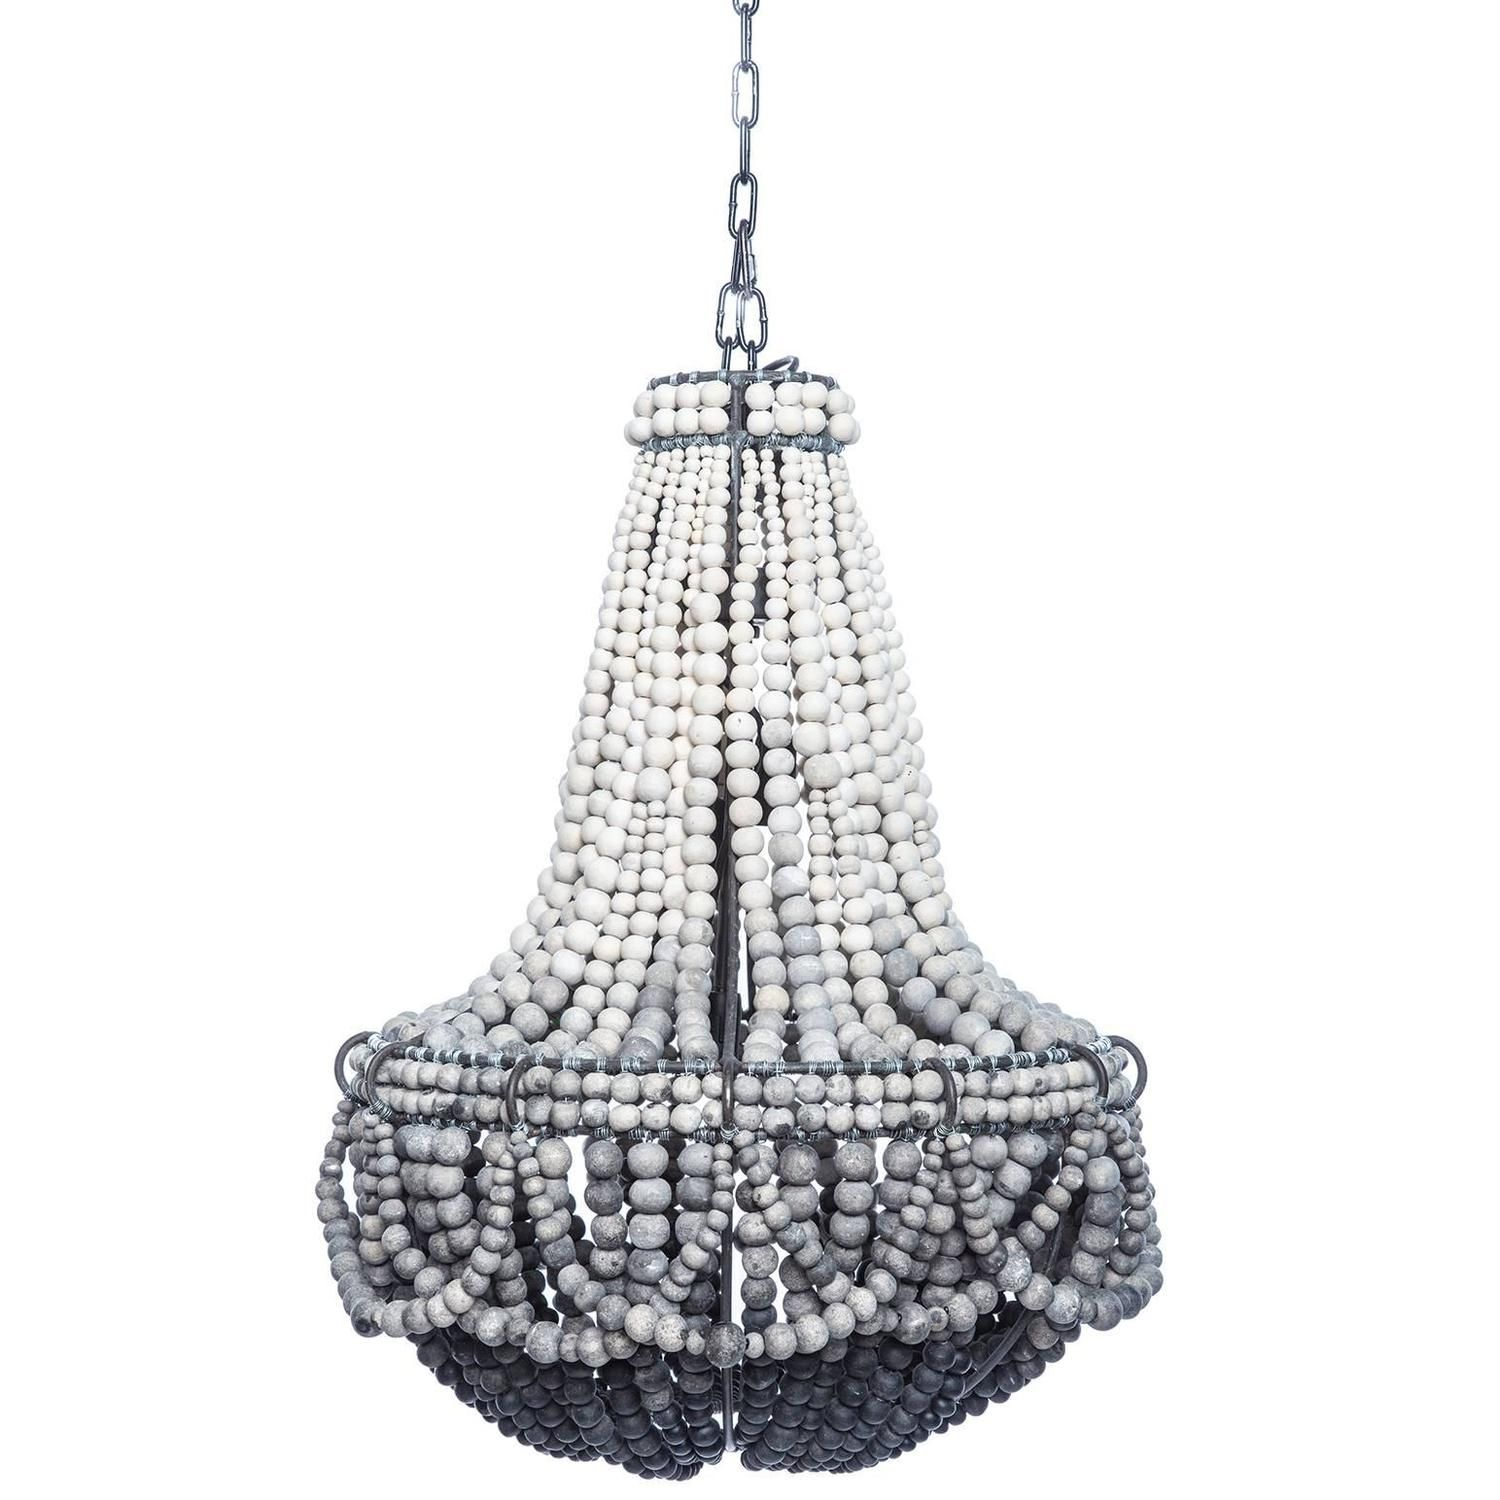 Pin By Shelley On Chandelier Diy Beaded Chandelier Chandelier Pendant Lights Diy Chandelier